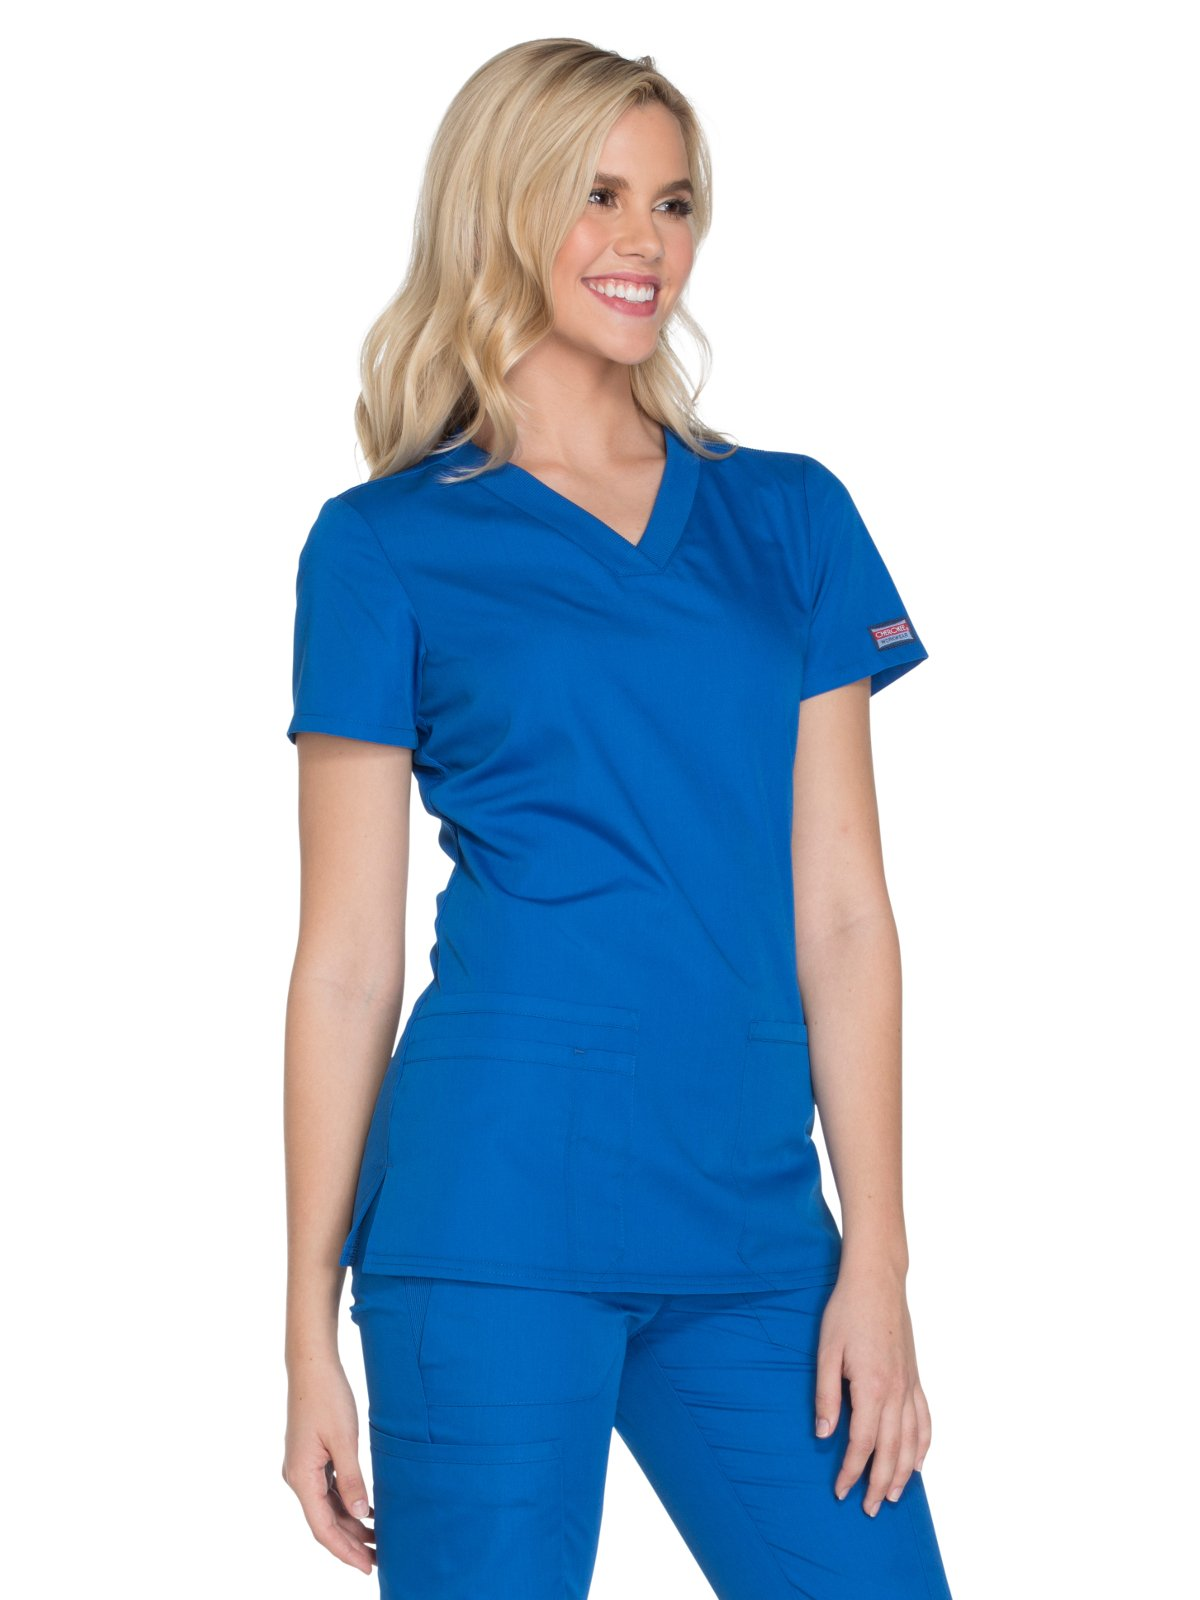 Cherokee Workwear Originals Women's Knit V-Neck Solid Scrub Top Large Royal